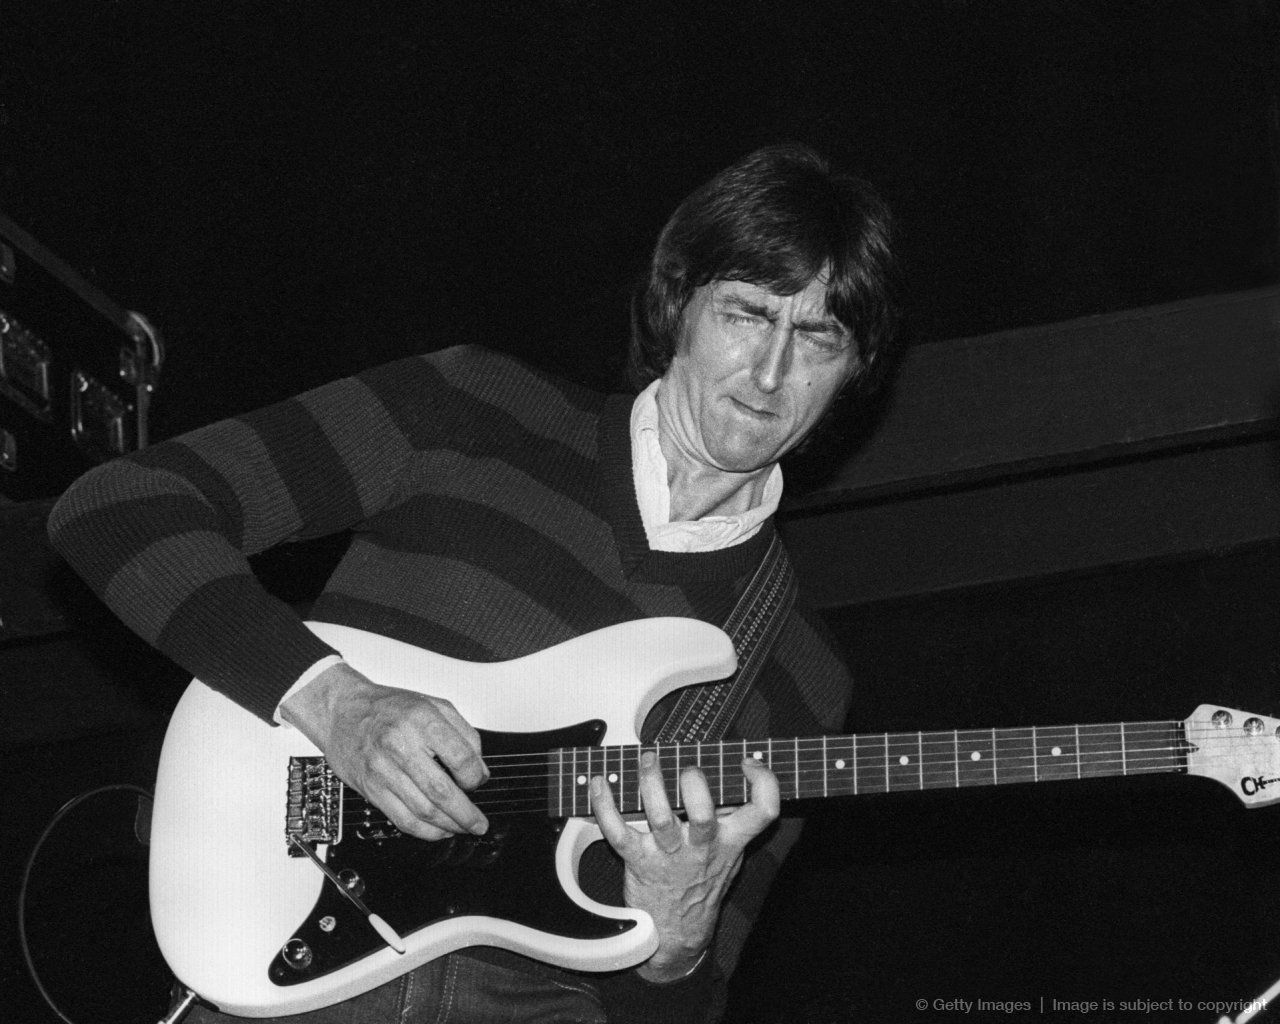 Allan Holdsworth The Very First Guitar We Did For Allan Holdsworth